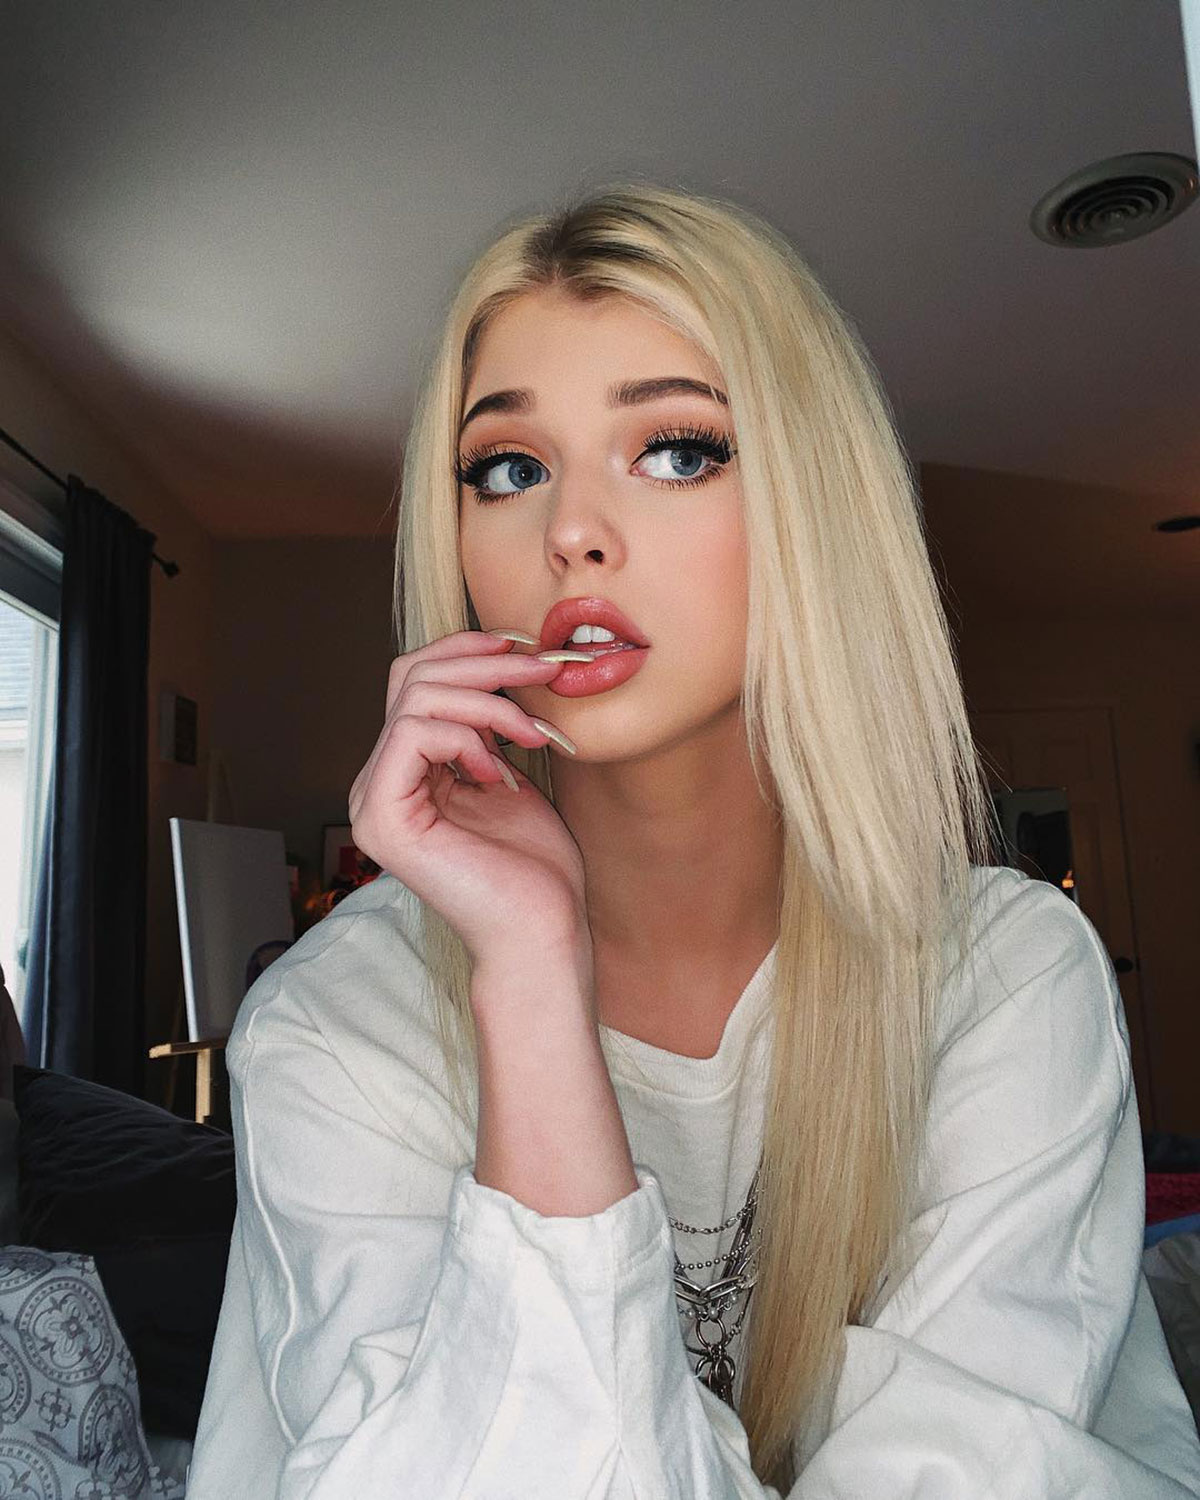 Loren Gray Earned Her 80 Million Followers By Lip Syncing Radio Hits